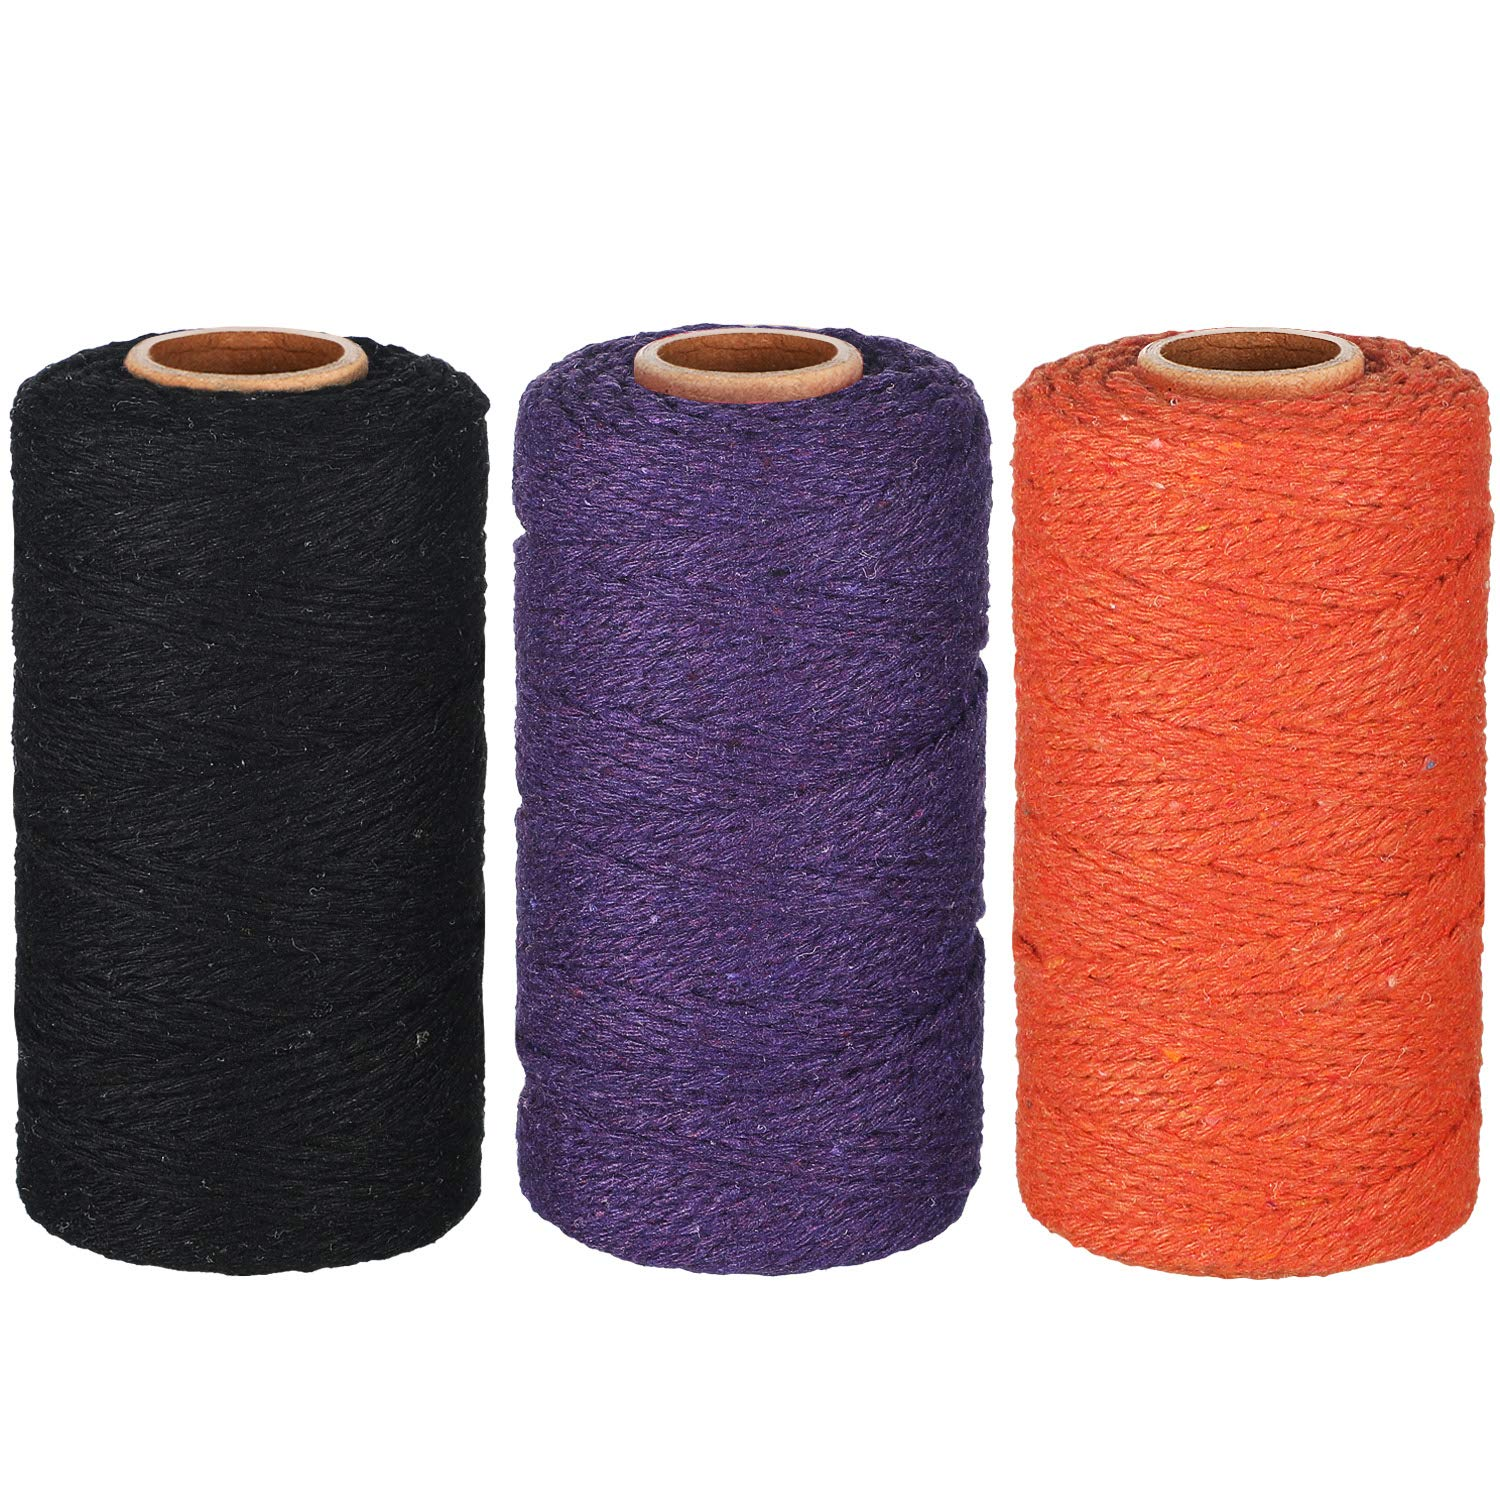 984 Feet Cotton Baker Twine 2 mm Halloween Valentine's Day Christmas Wrapping String Rope for DIY Craft (Black, Orange, Purple) by Pangda